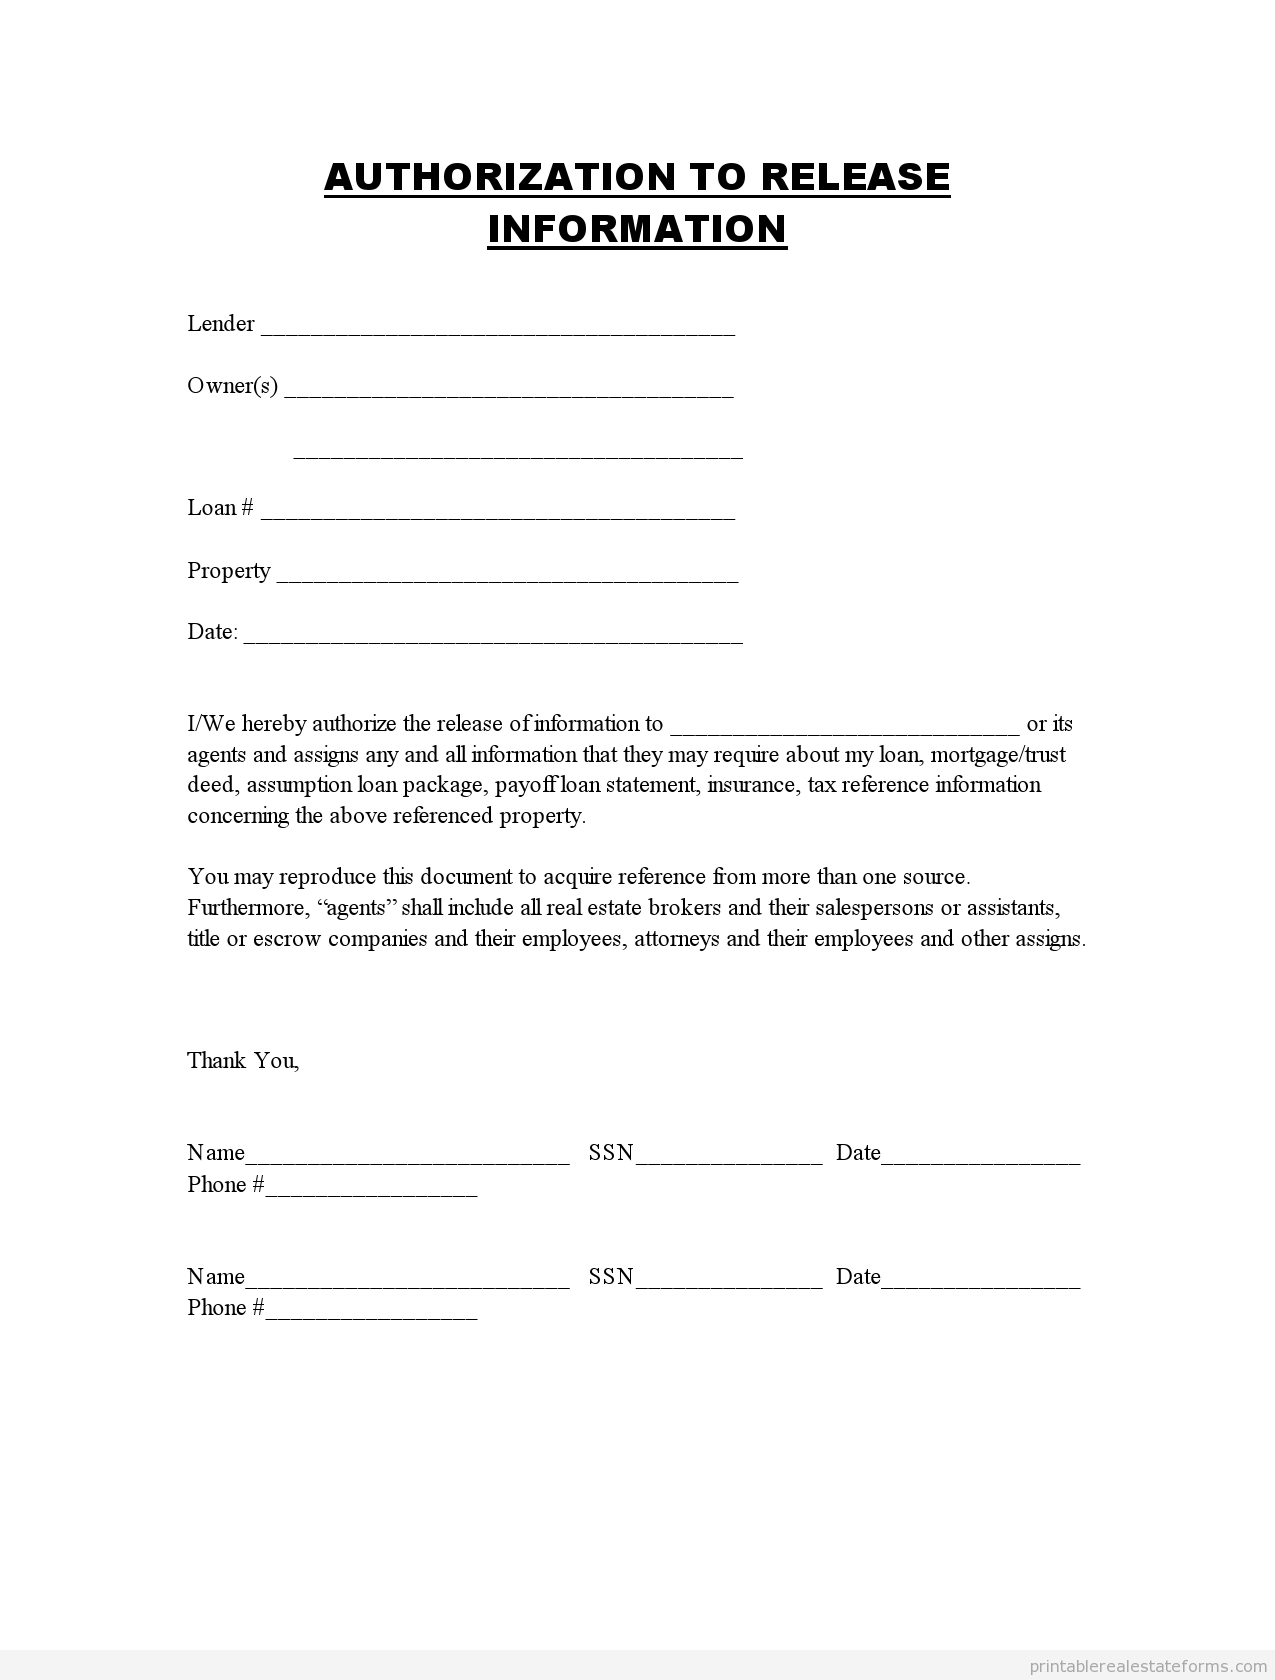 form 8814 instructions 2010